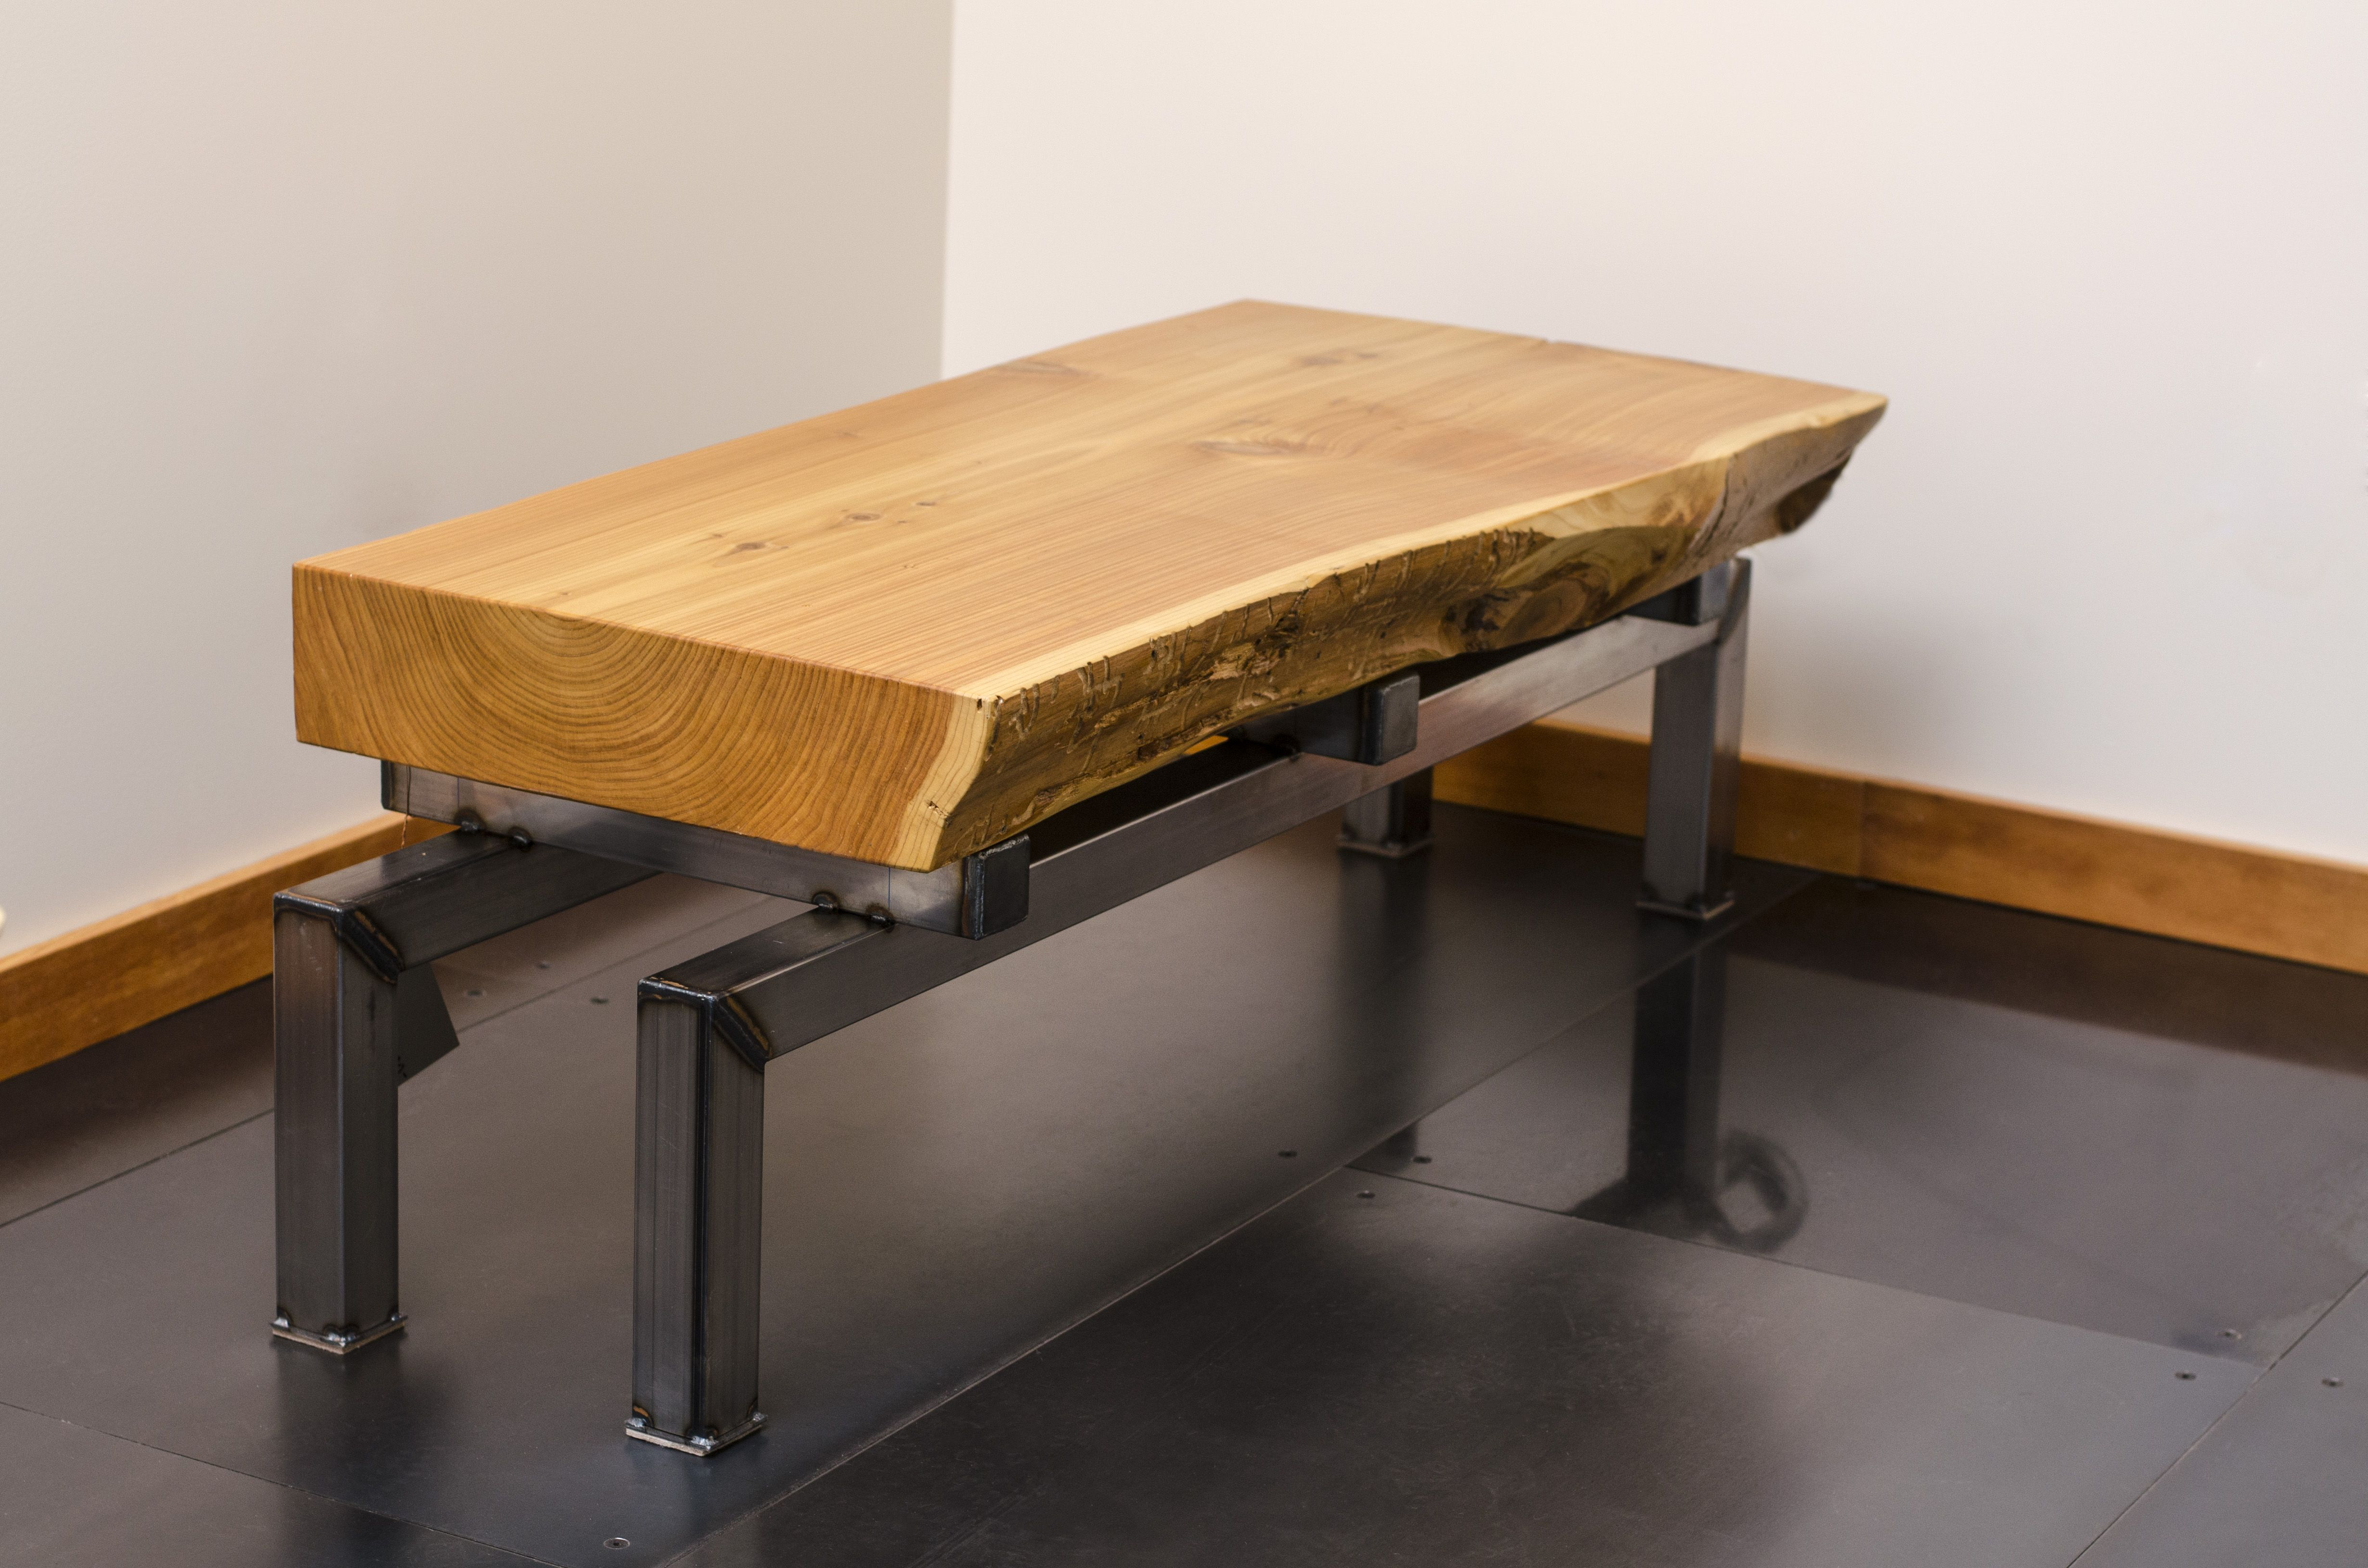 Asian Inspired Dining Room Buy A Hand Crafted Live Edge Cedar Slab Coffee Table On